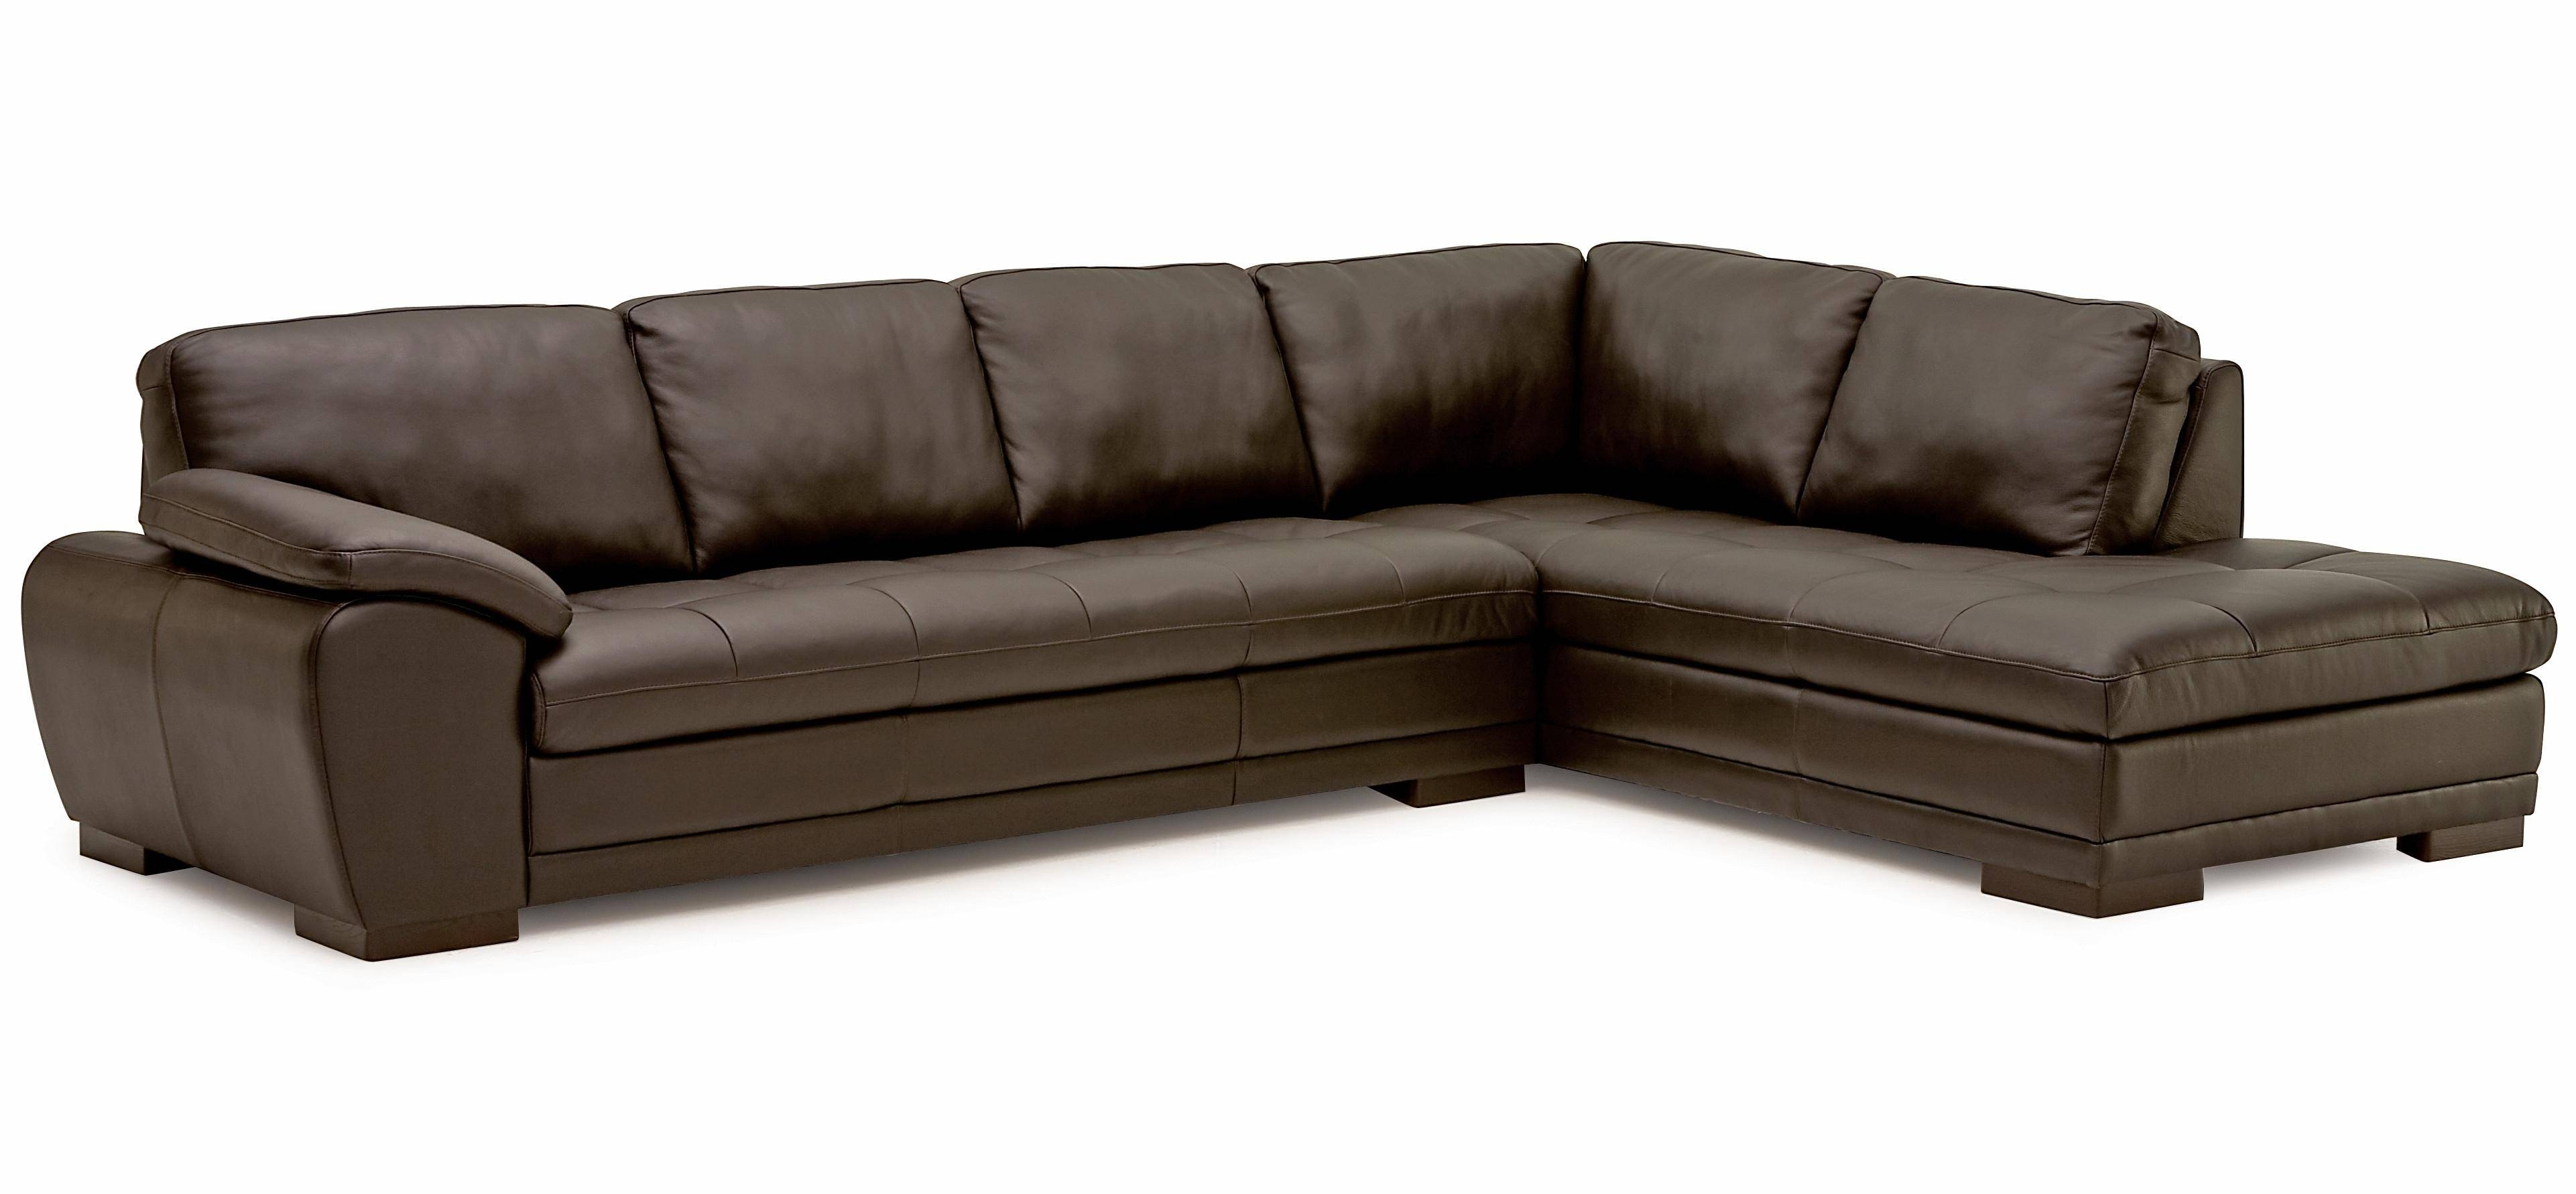 Palliser Miami Contemporary 2 Piece Sectional Sofa With Right With Sectional Sofa With 2 Chaises (View 26 of 30)